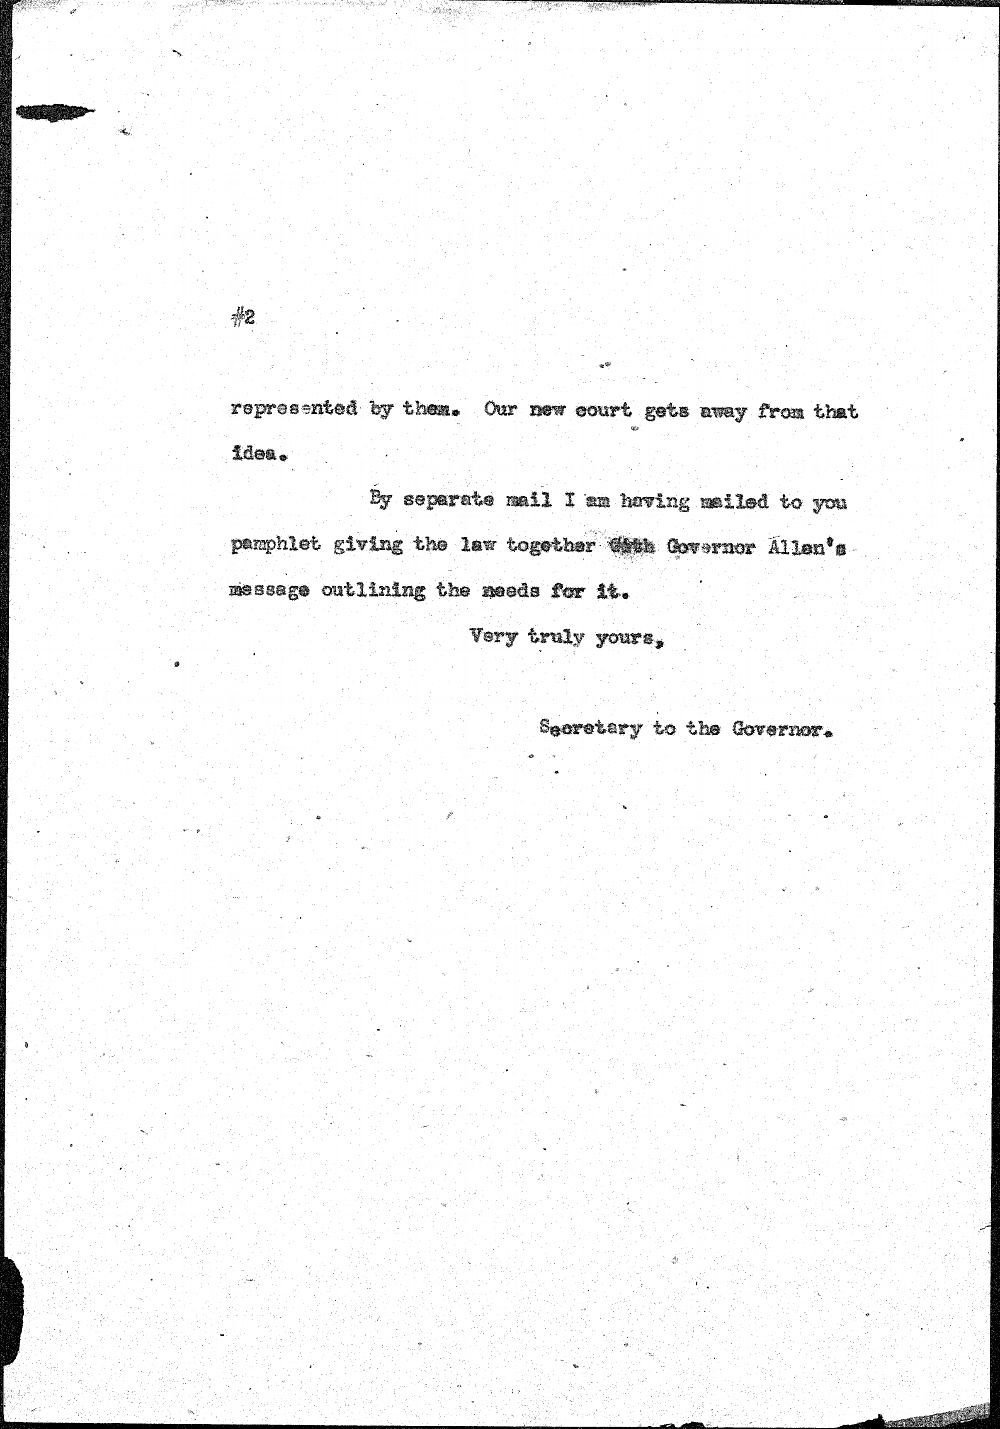 Secretary to Governor Henry Allen to Orville Buckles - 2